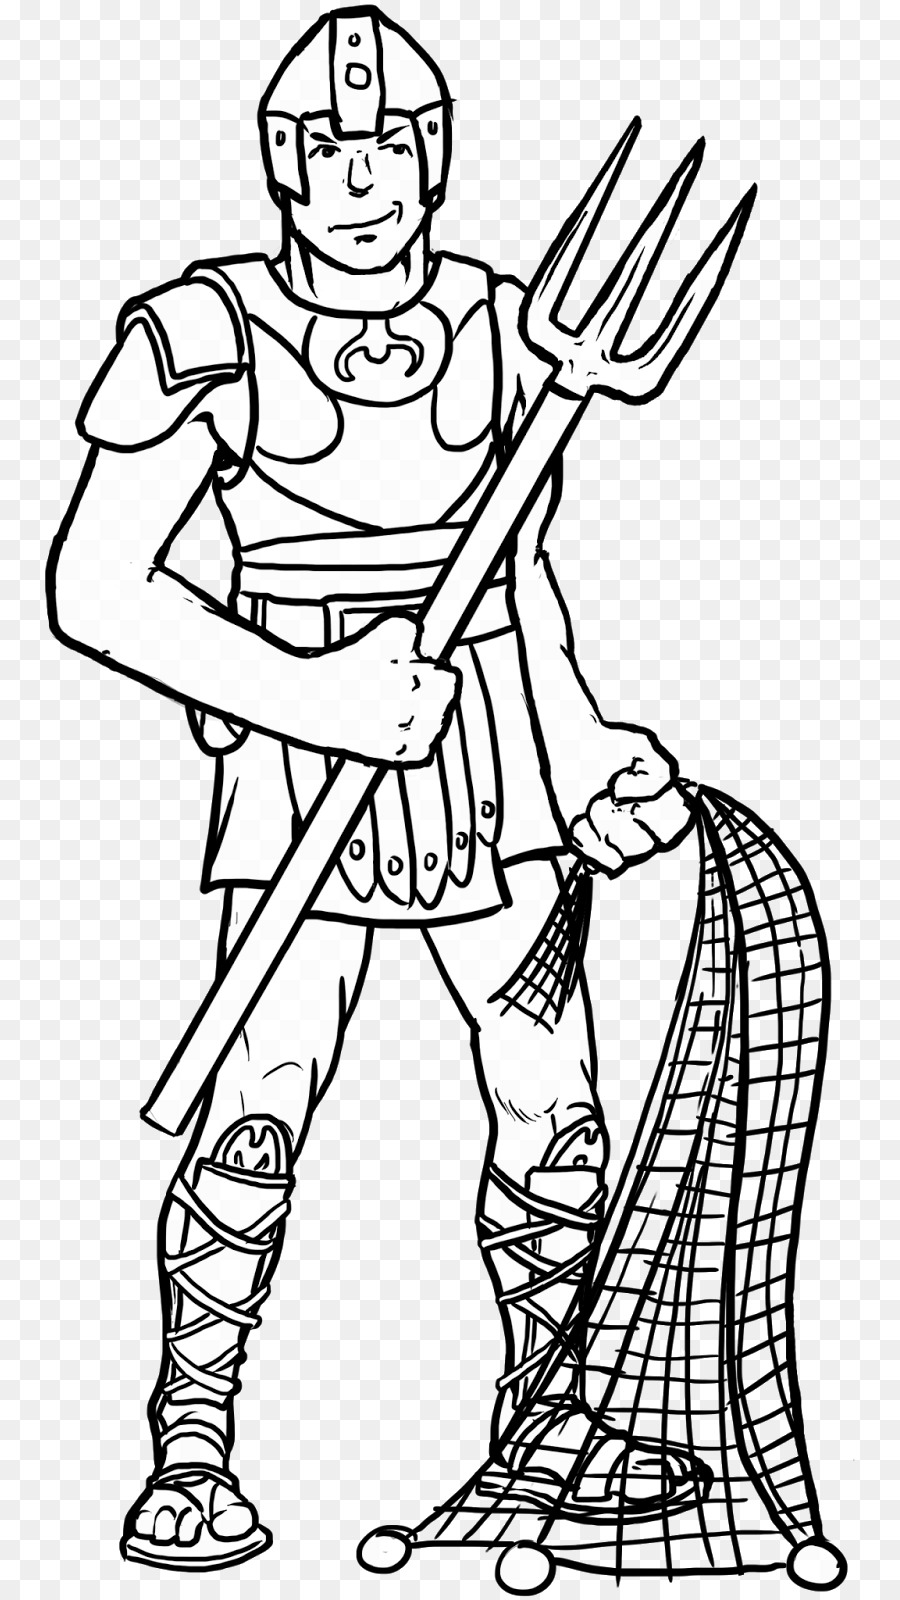 png freeuse Bean drawing gladiator. Book black and white